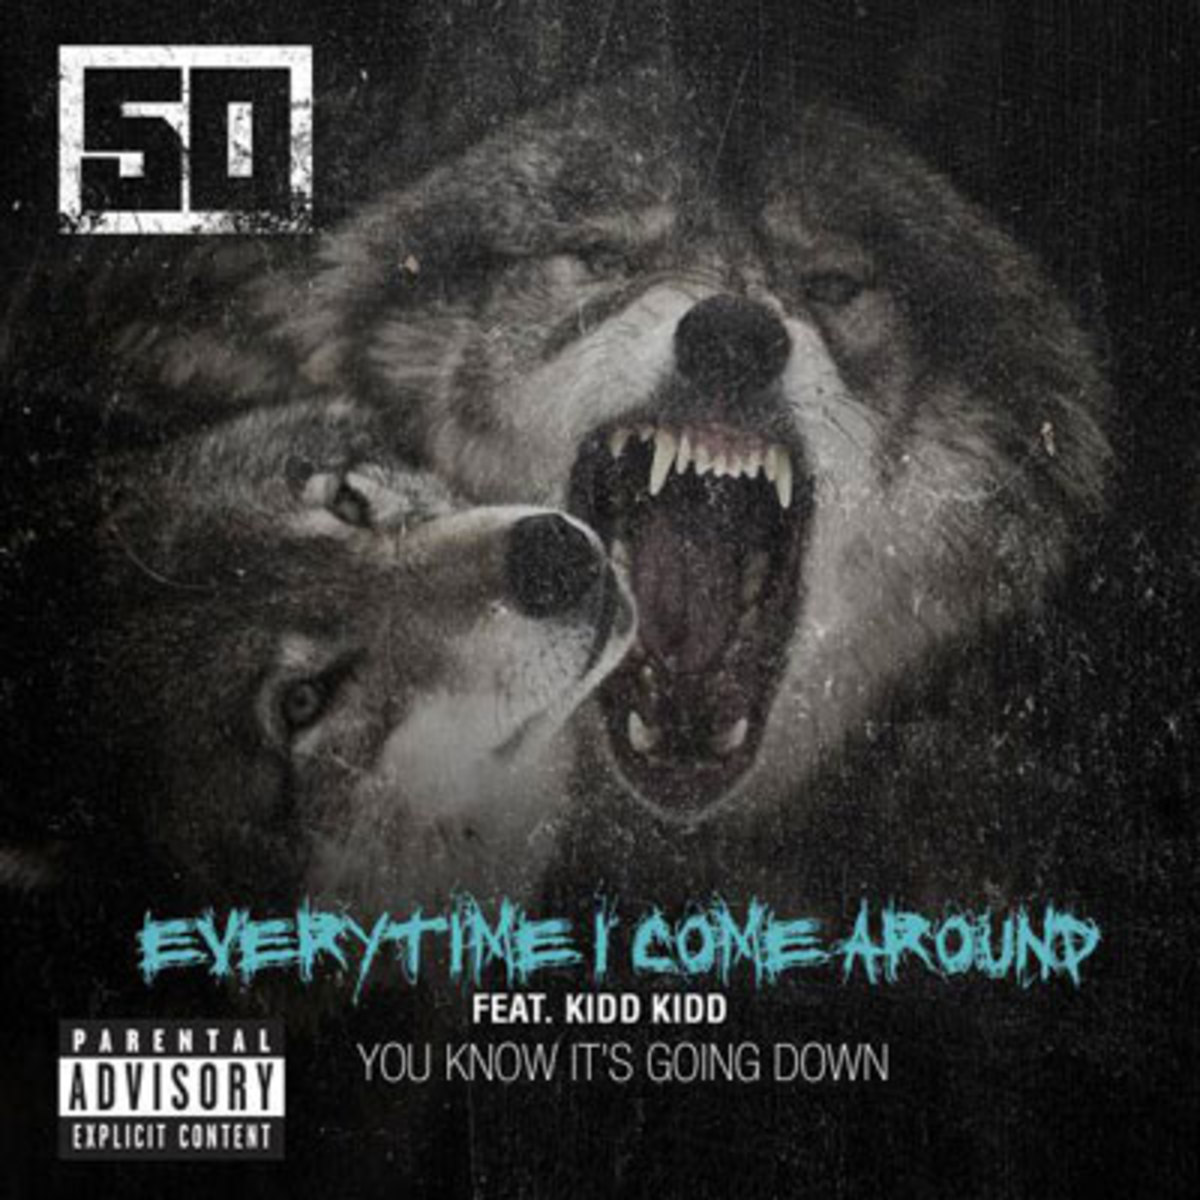 50cent-everytimearound.jpg